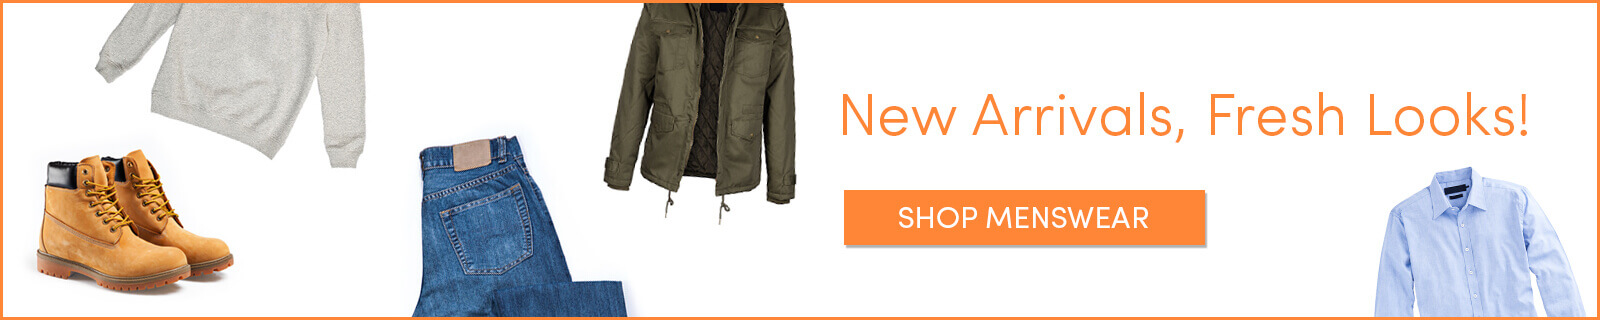 Shop New Arrivals in Top Men's Clothes